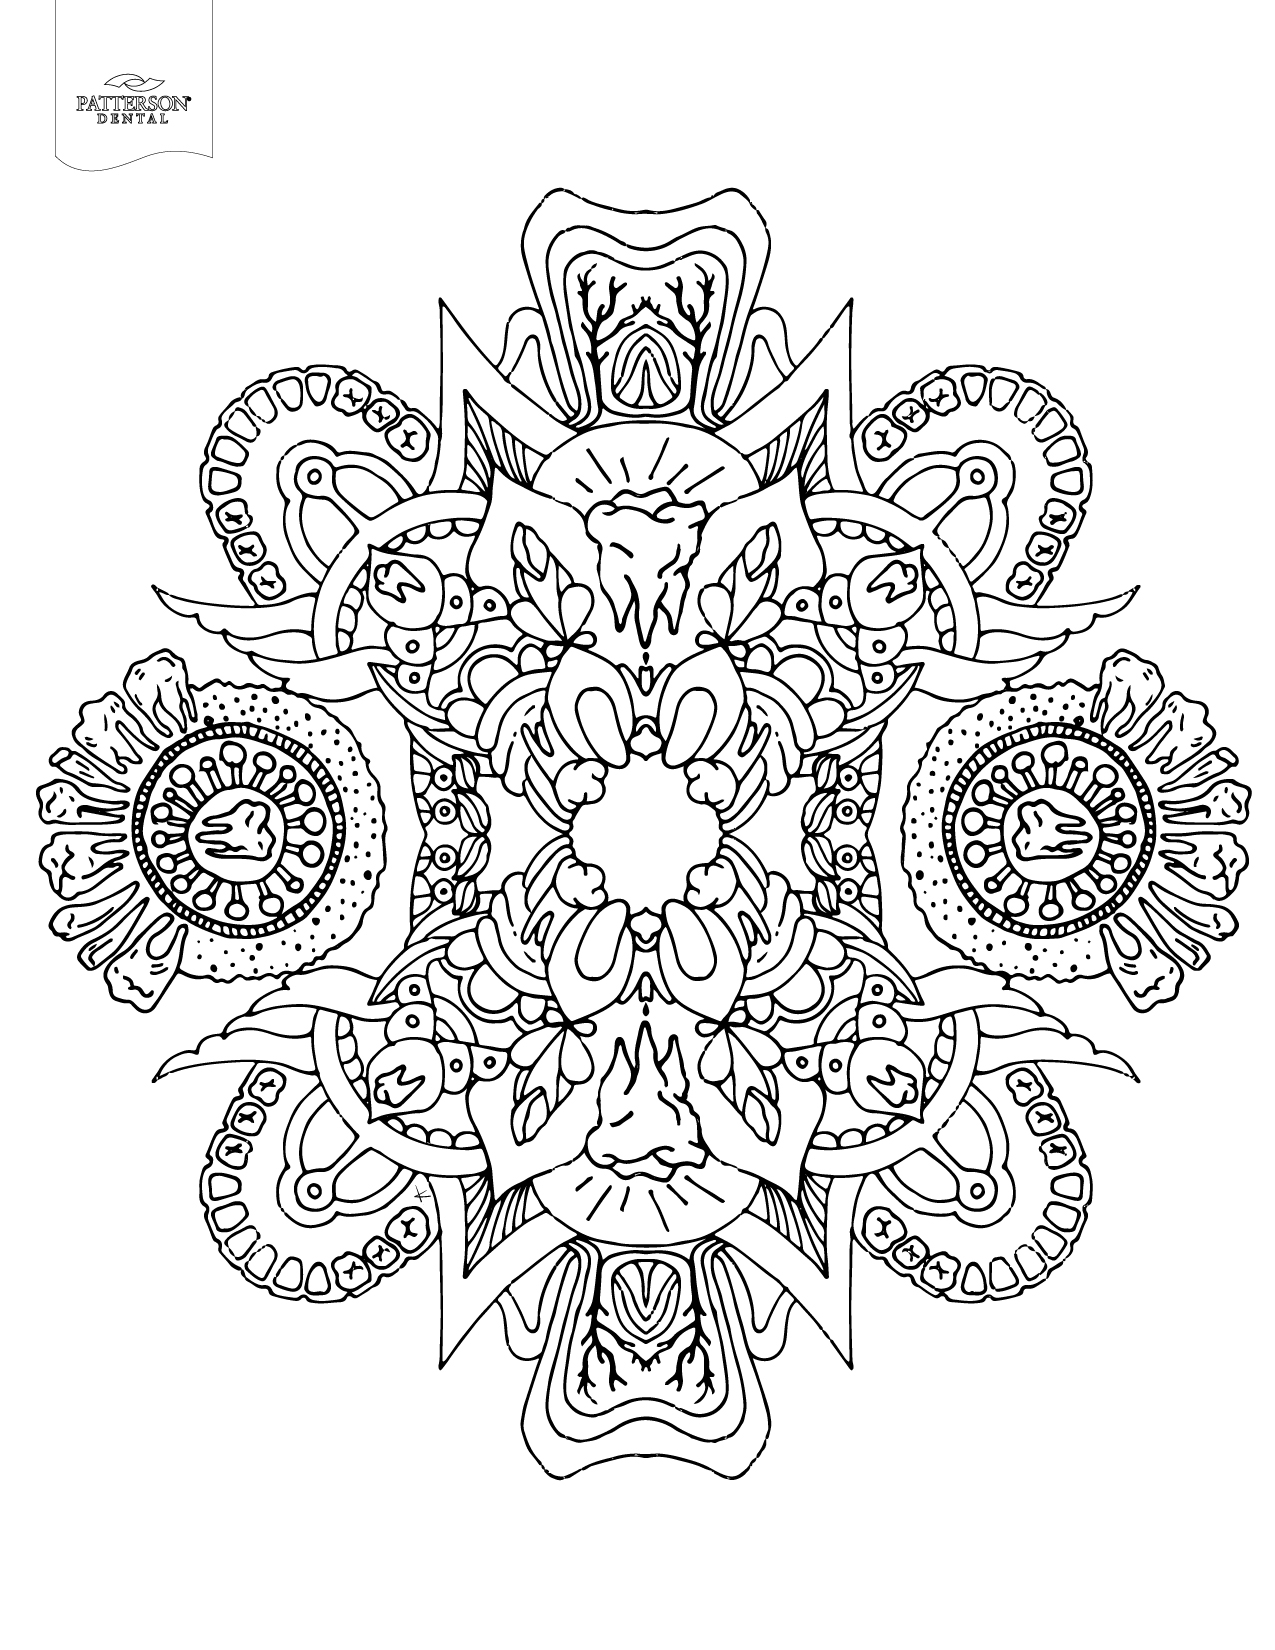 full size coloring pages 10 toothy adult coloring pages printable off the cusp size full pages coloring